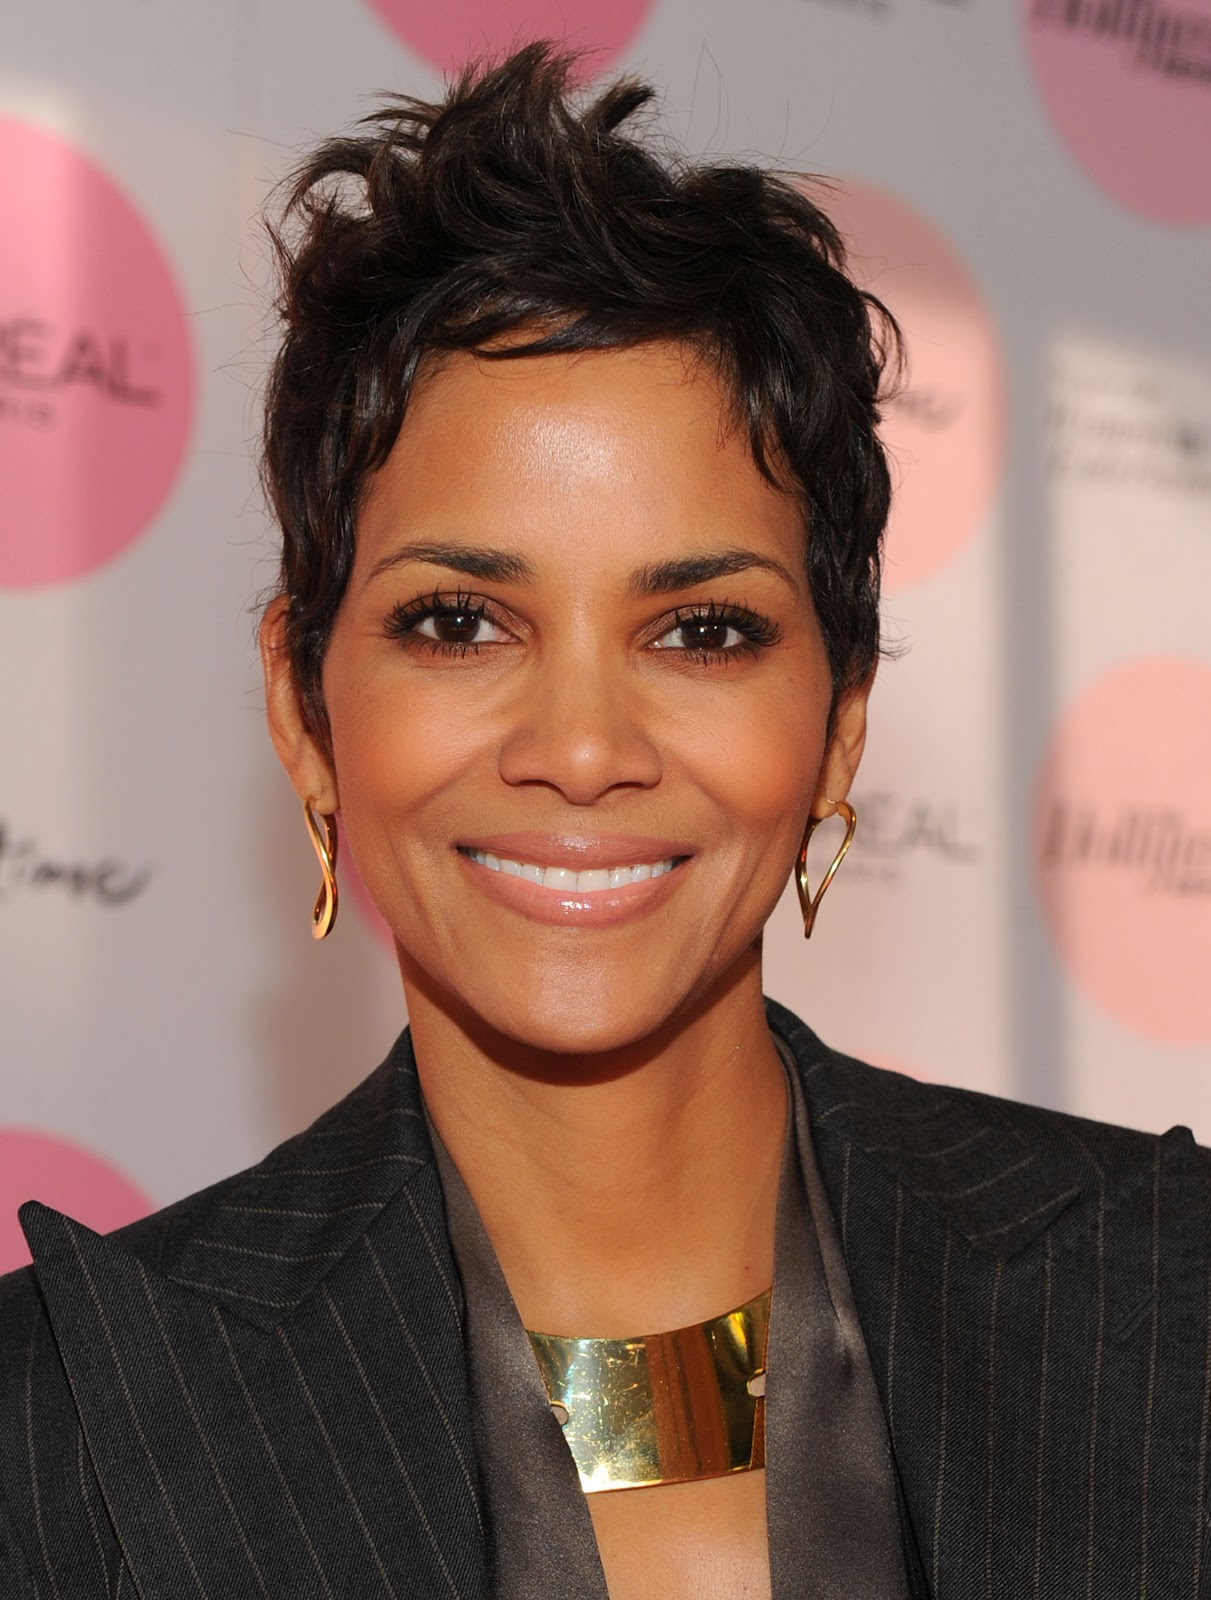 Halle-Berry-halle-berry-hairstyles-miss-usa-world-model-acting-films